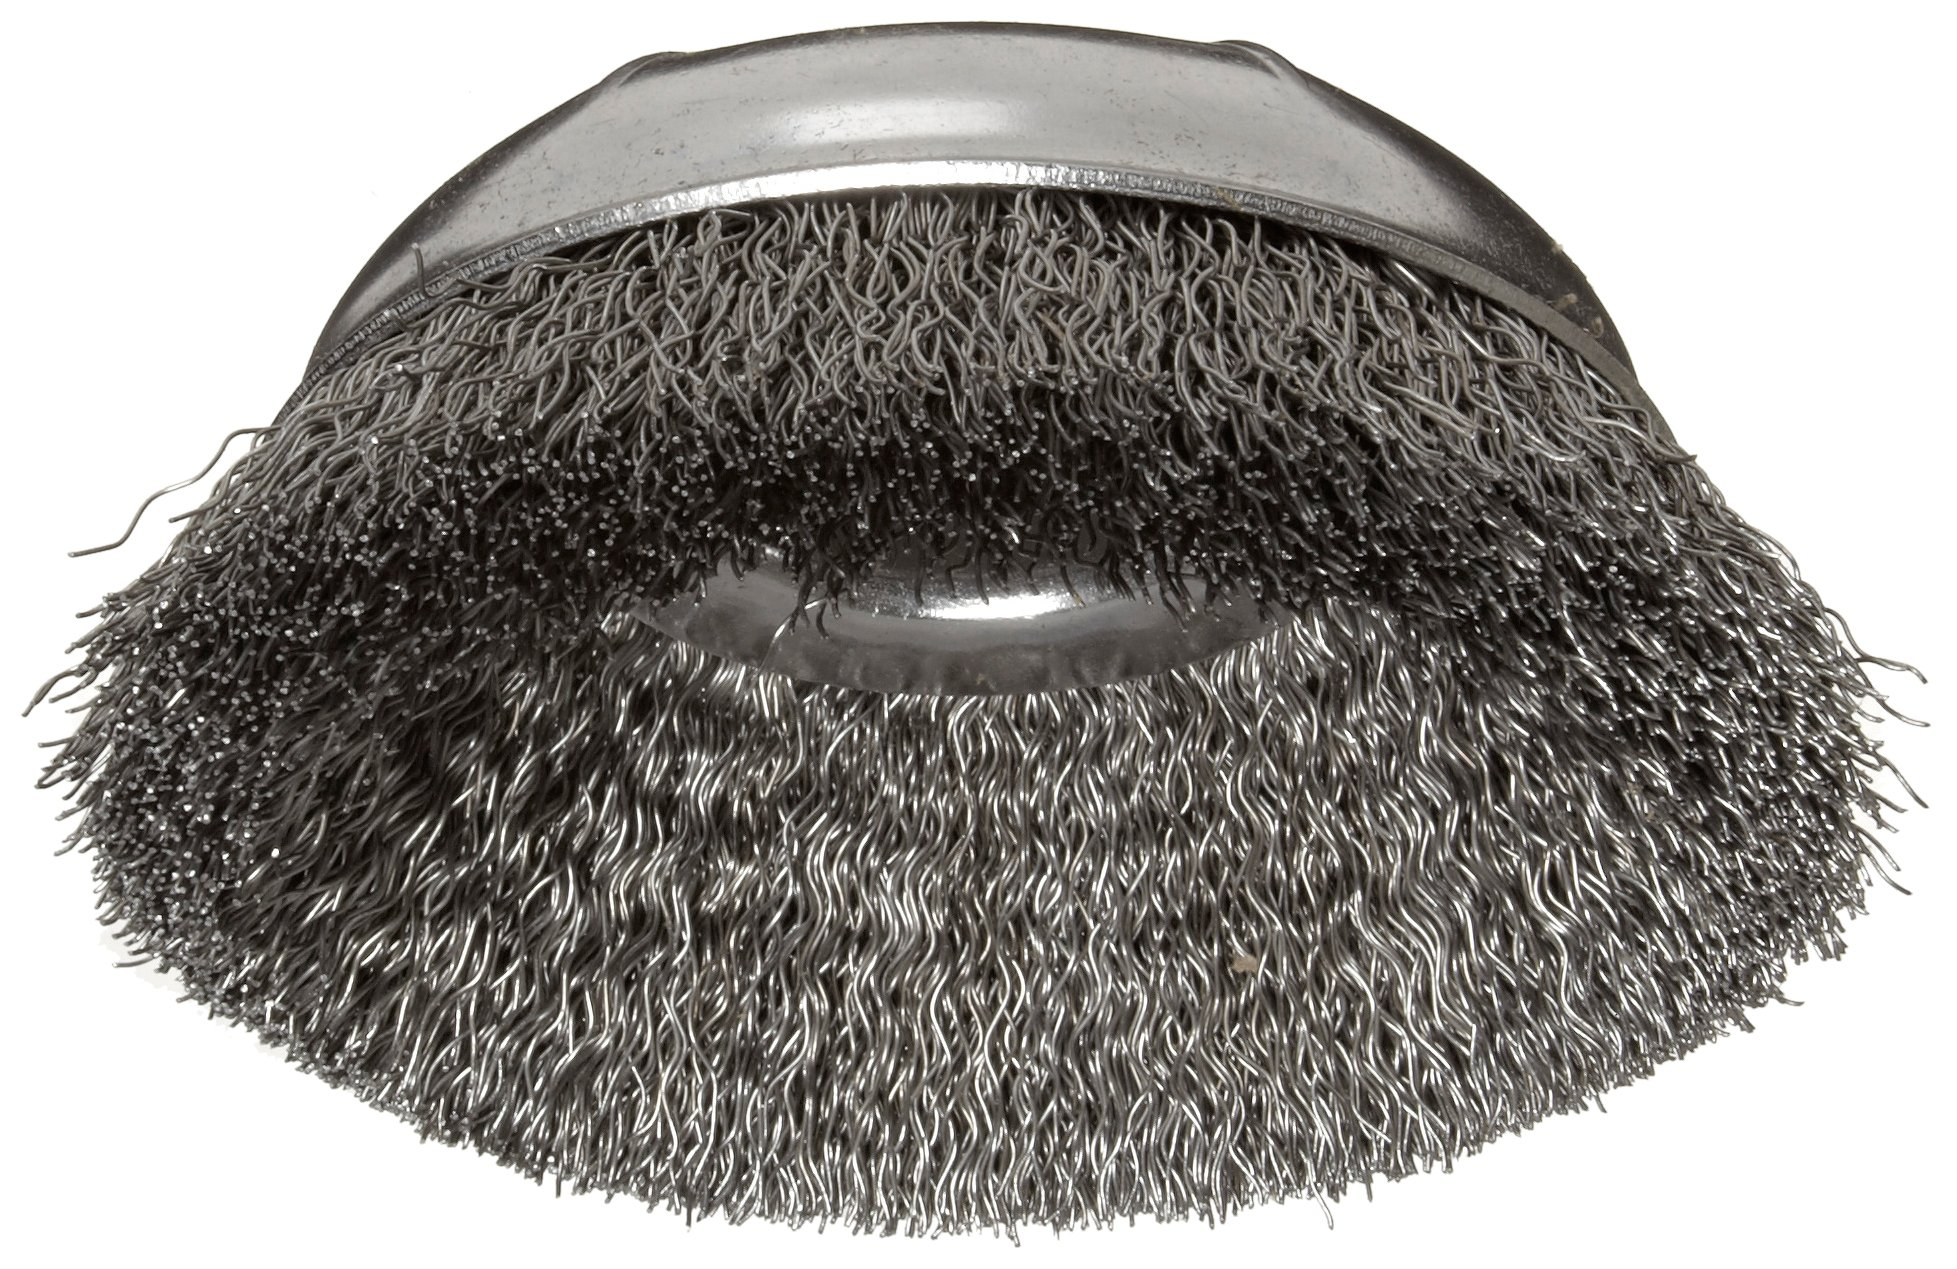 Weiler Wire Cup Brush, Threaded Hole, Steel, Crimped Wire, 4'' Diameter, 0.0118'' Wire Diameter, 5/8''-11 Arbor, 1-3/8'' Bristle Length, 9000 rpm (Pack of 1)